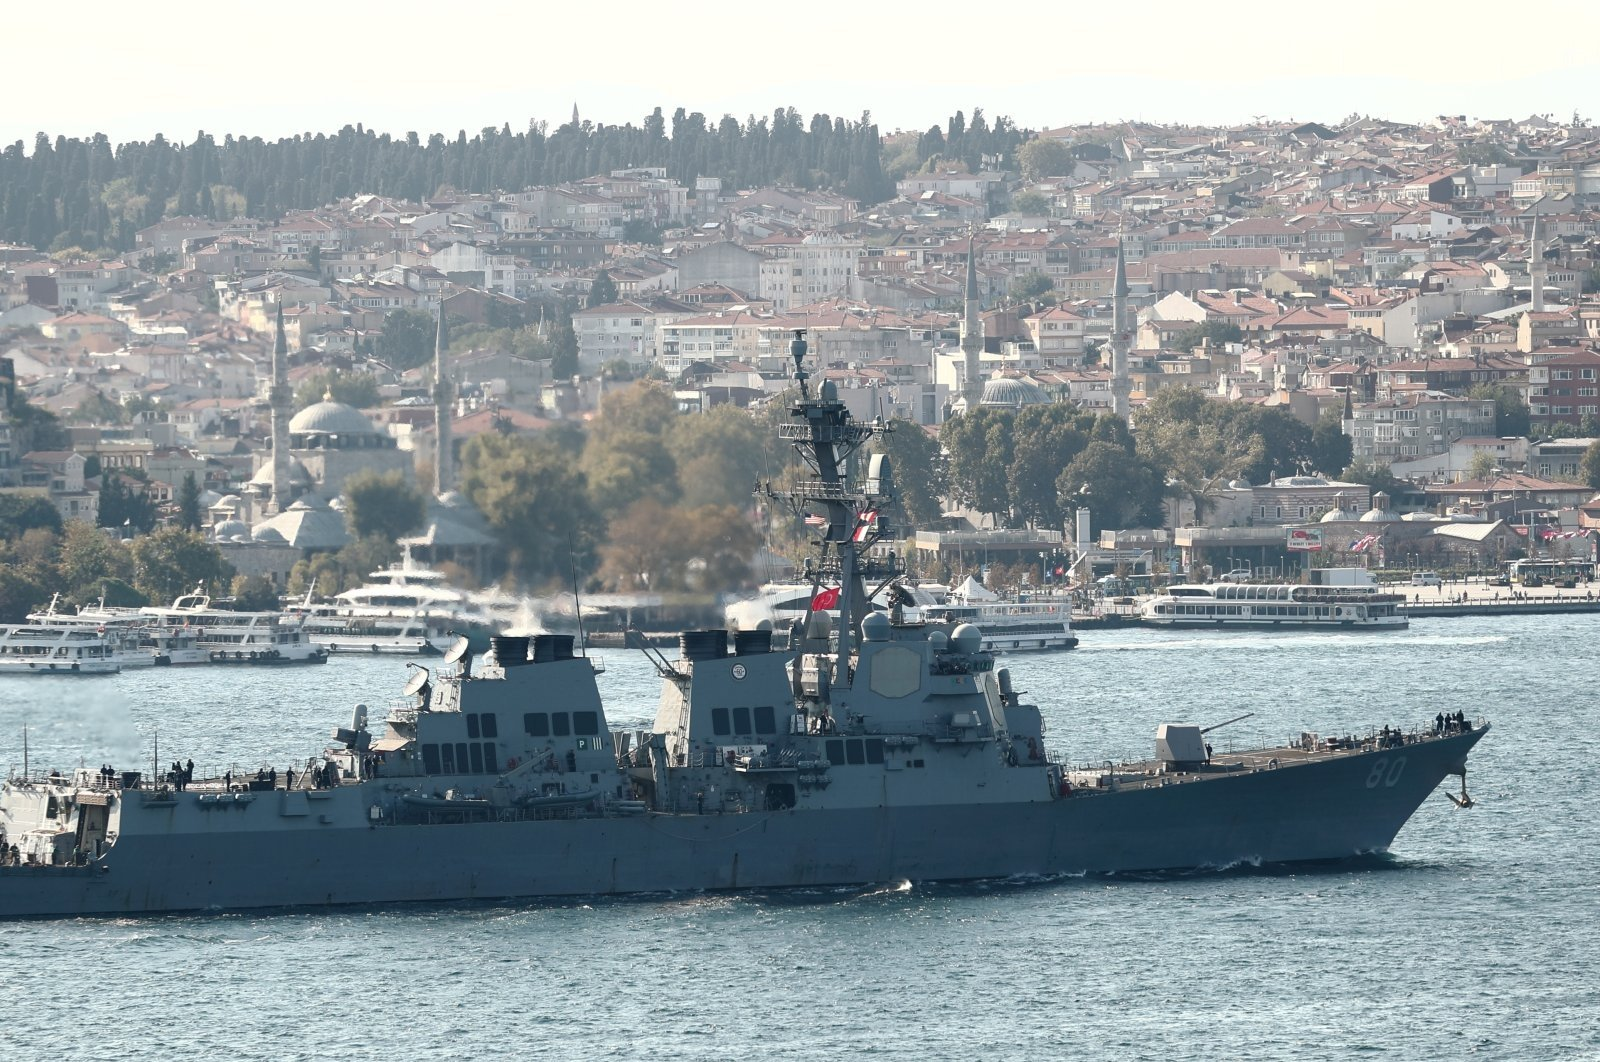 U.S. Navy Arleigh-Burke class destroyer USS Roosevelt (DDG 80) sets sail in the Bosphorus, returning from the Black Sea, in Istanbul, Turkey Oct. 2, 2020. (Reuters File Photo)